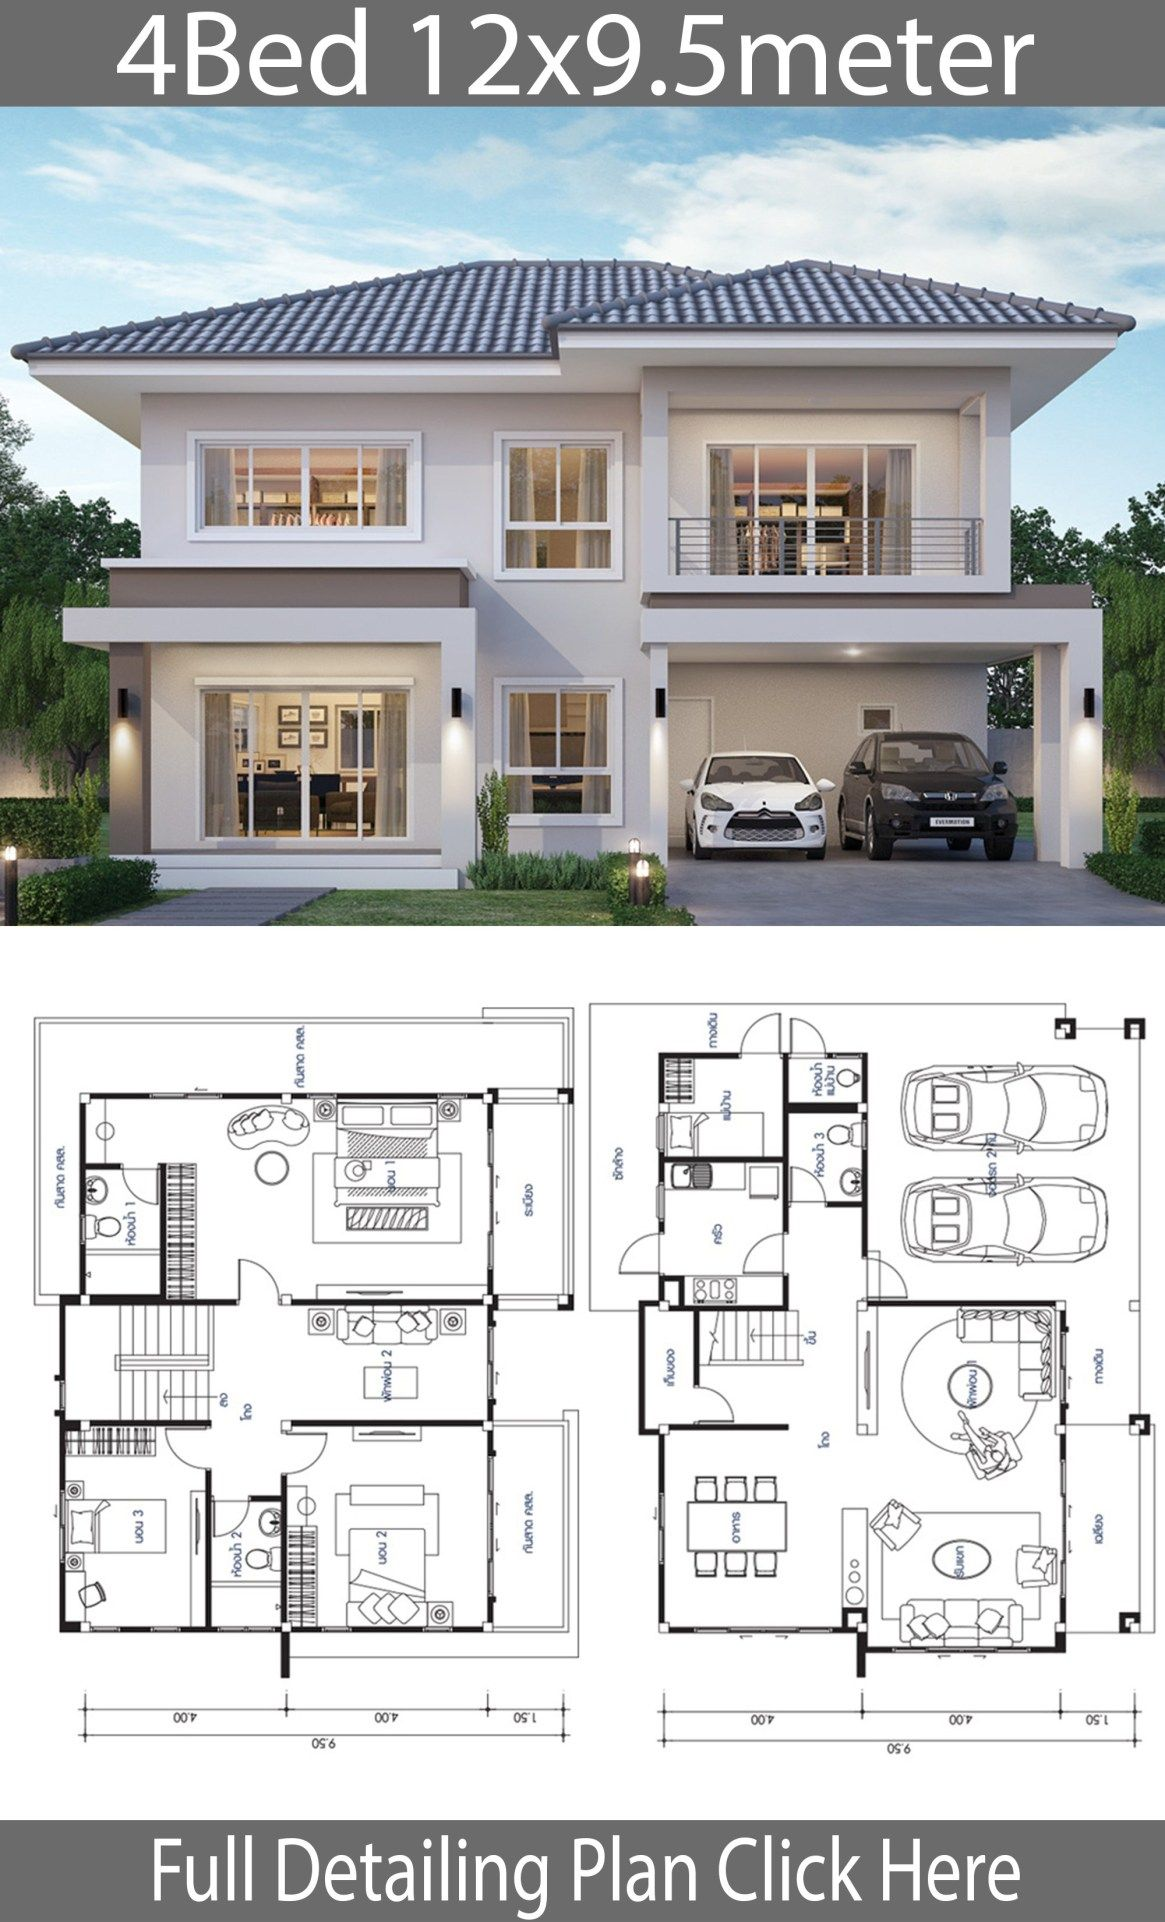 House Design Plan 12x9 5m With 4 Bedrooms Home Design With Plansearch 2 Storey House Design Sims House Plans Architectural House Plans